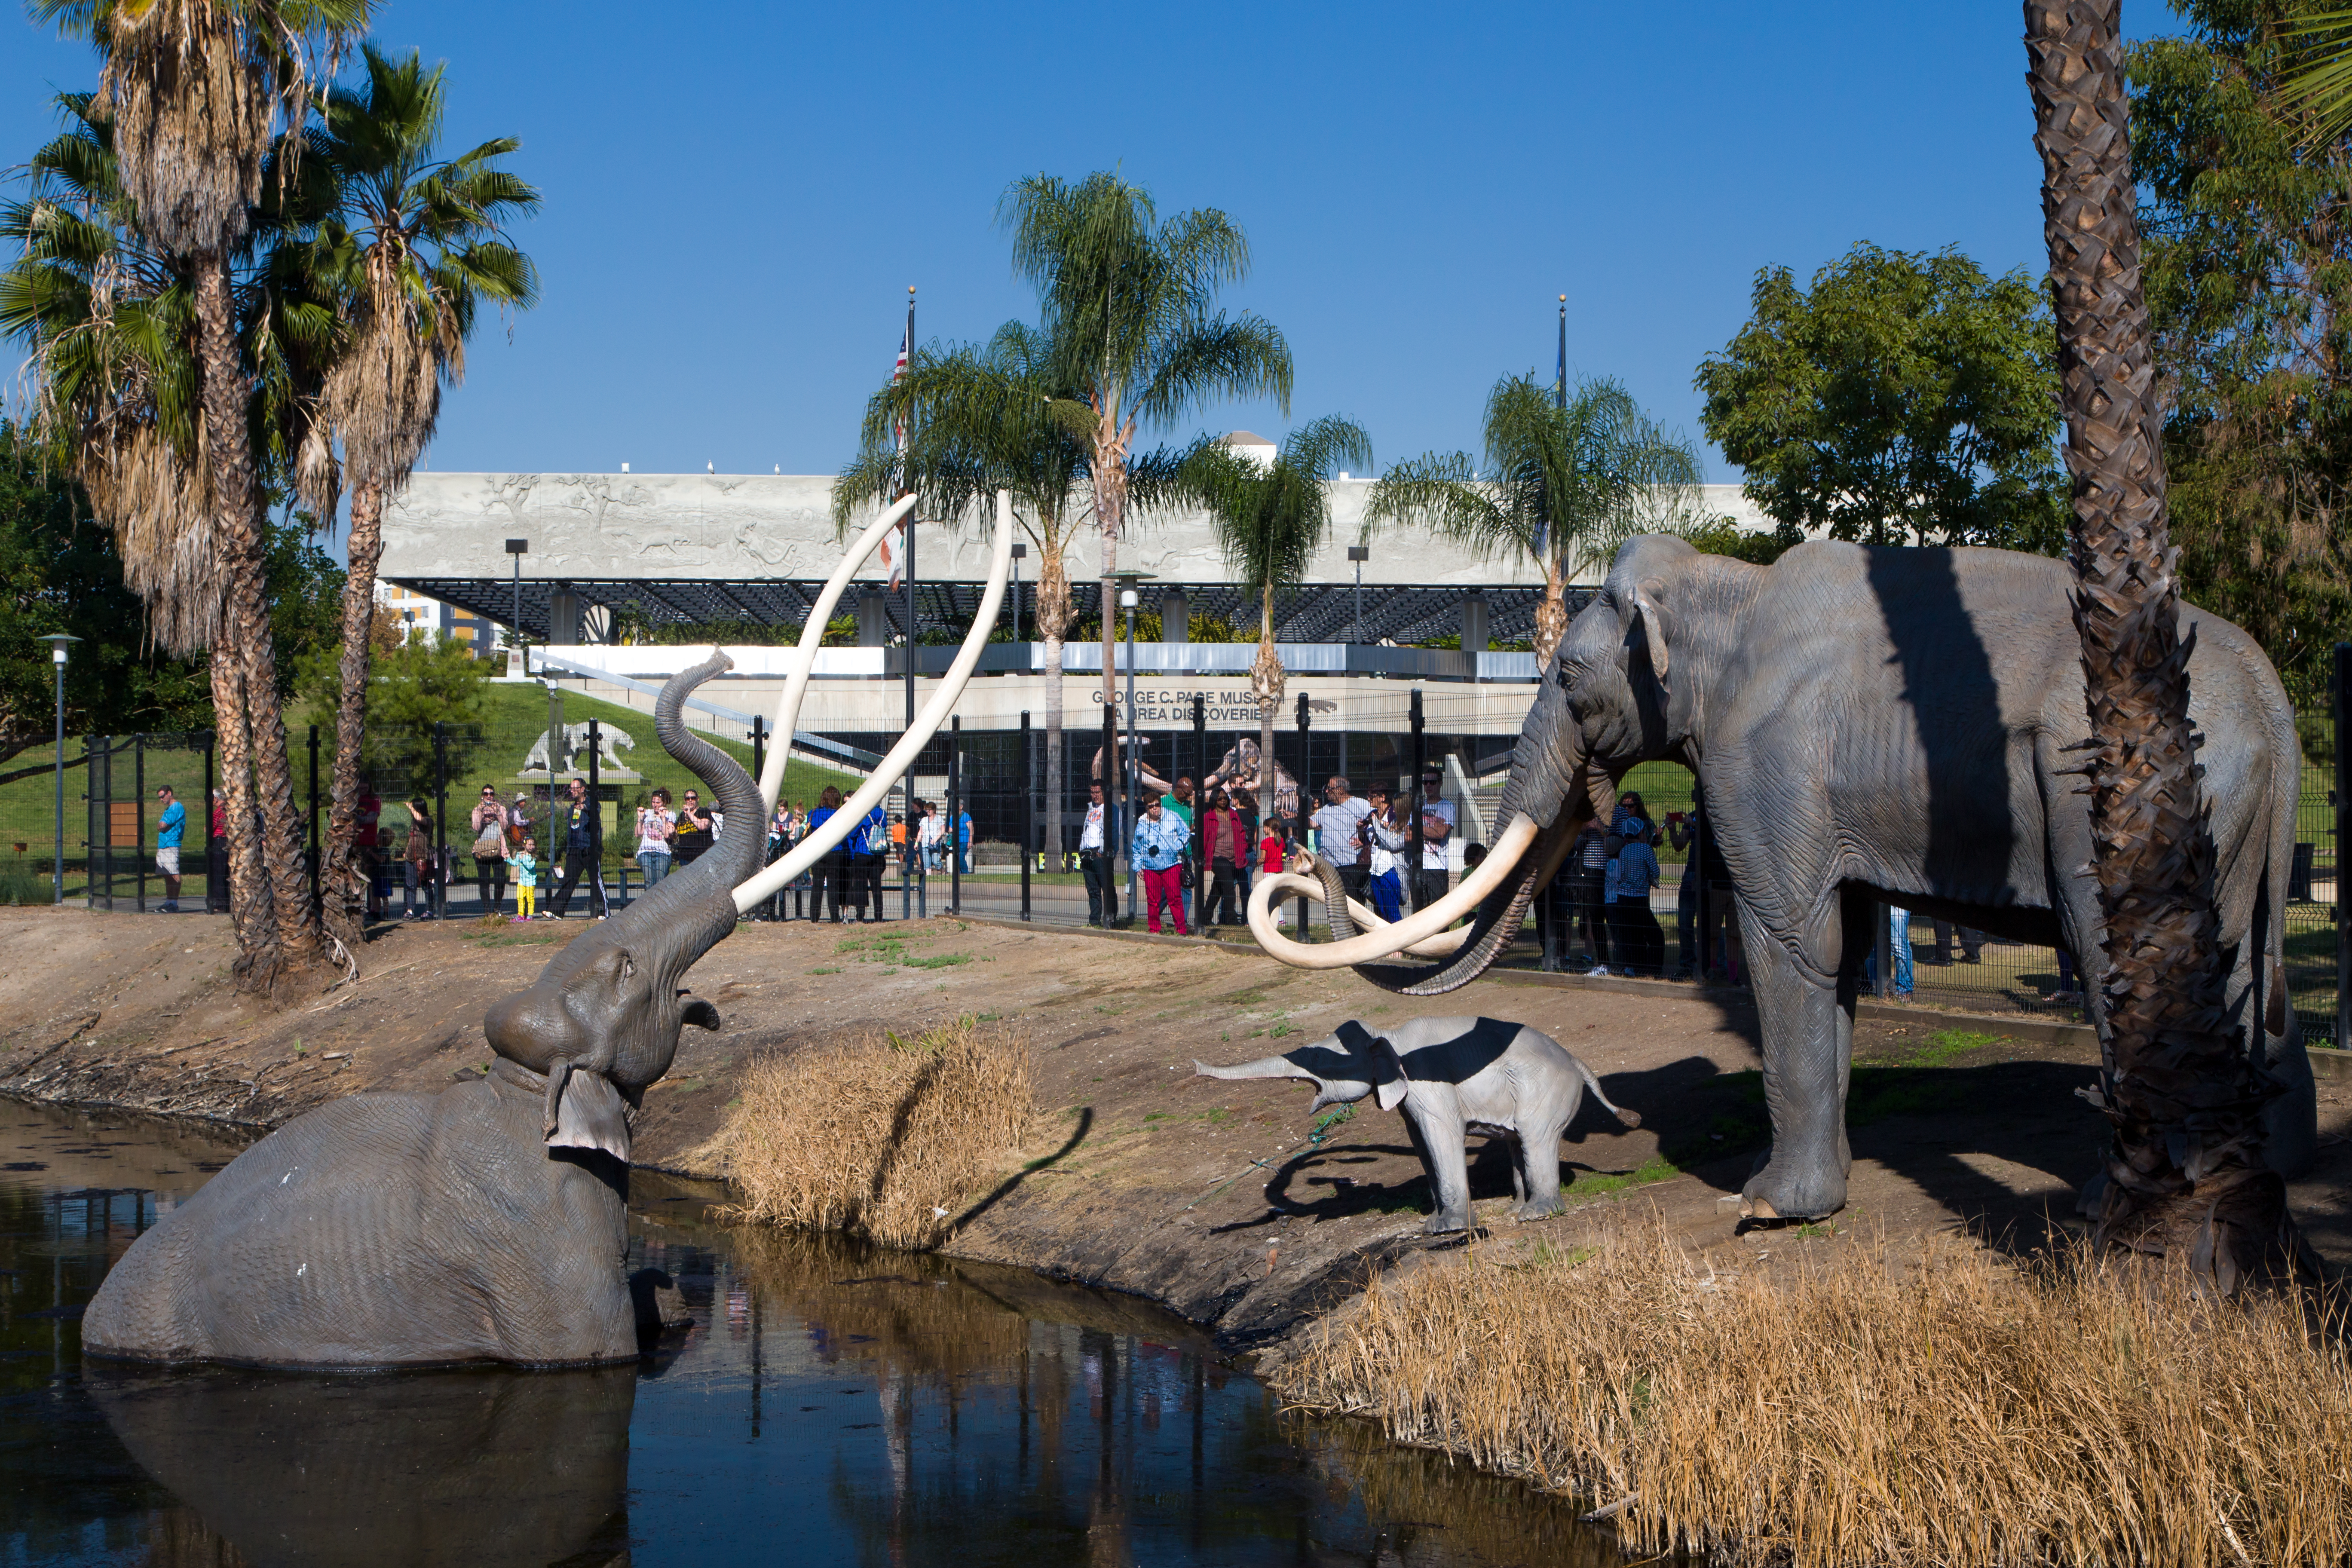 In the foreground is a body of water with sculptures of elephants at the edge. In the distance are palm trees and a large building.